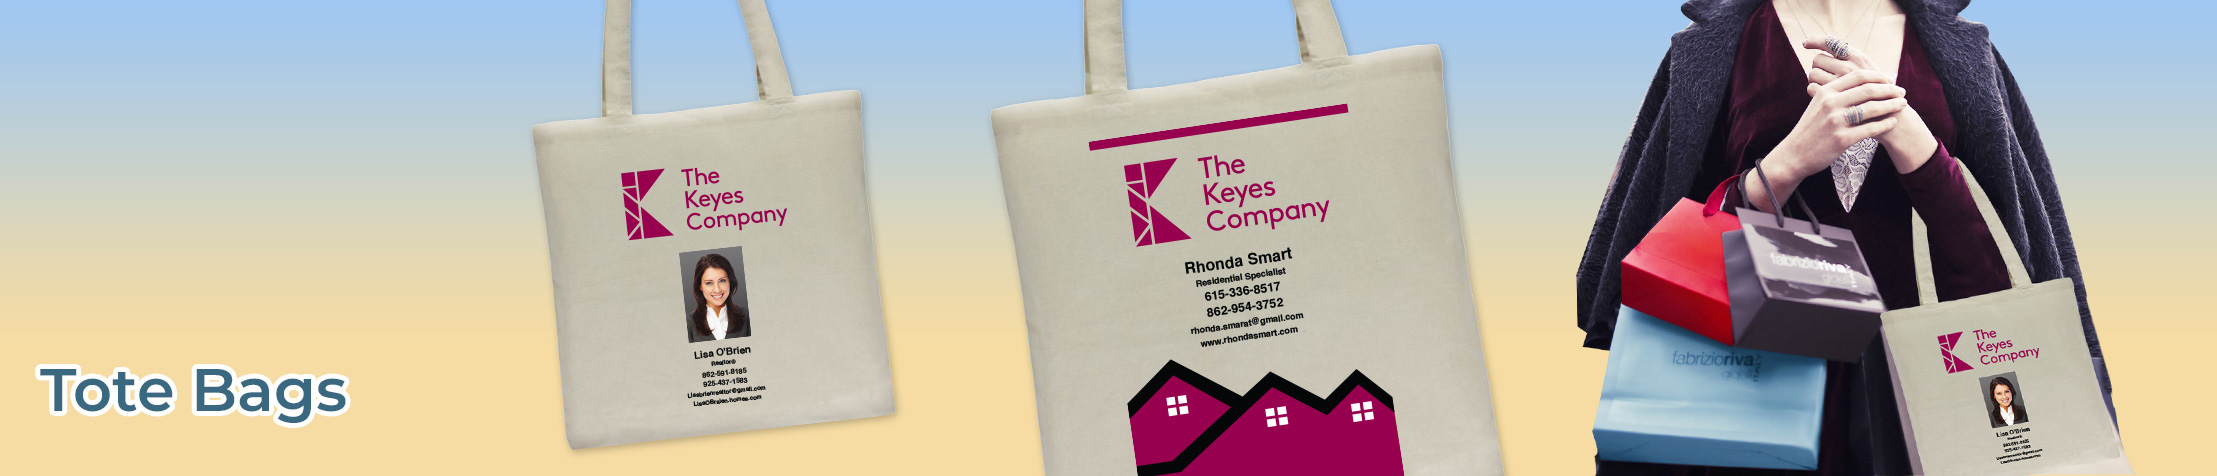 The Keyes Company Real Estate Tote Bags - The Keyes Company  personalized realtor promotional products | BestPrintBuy.com